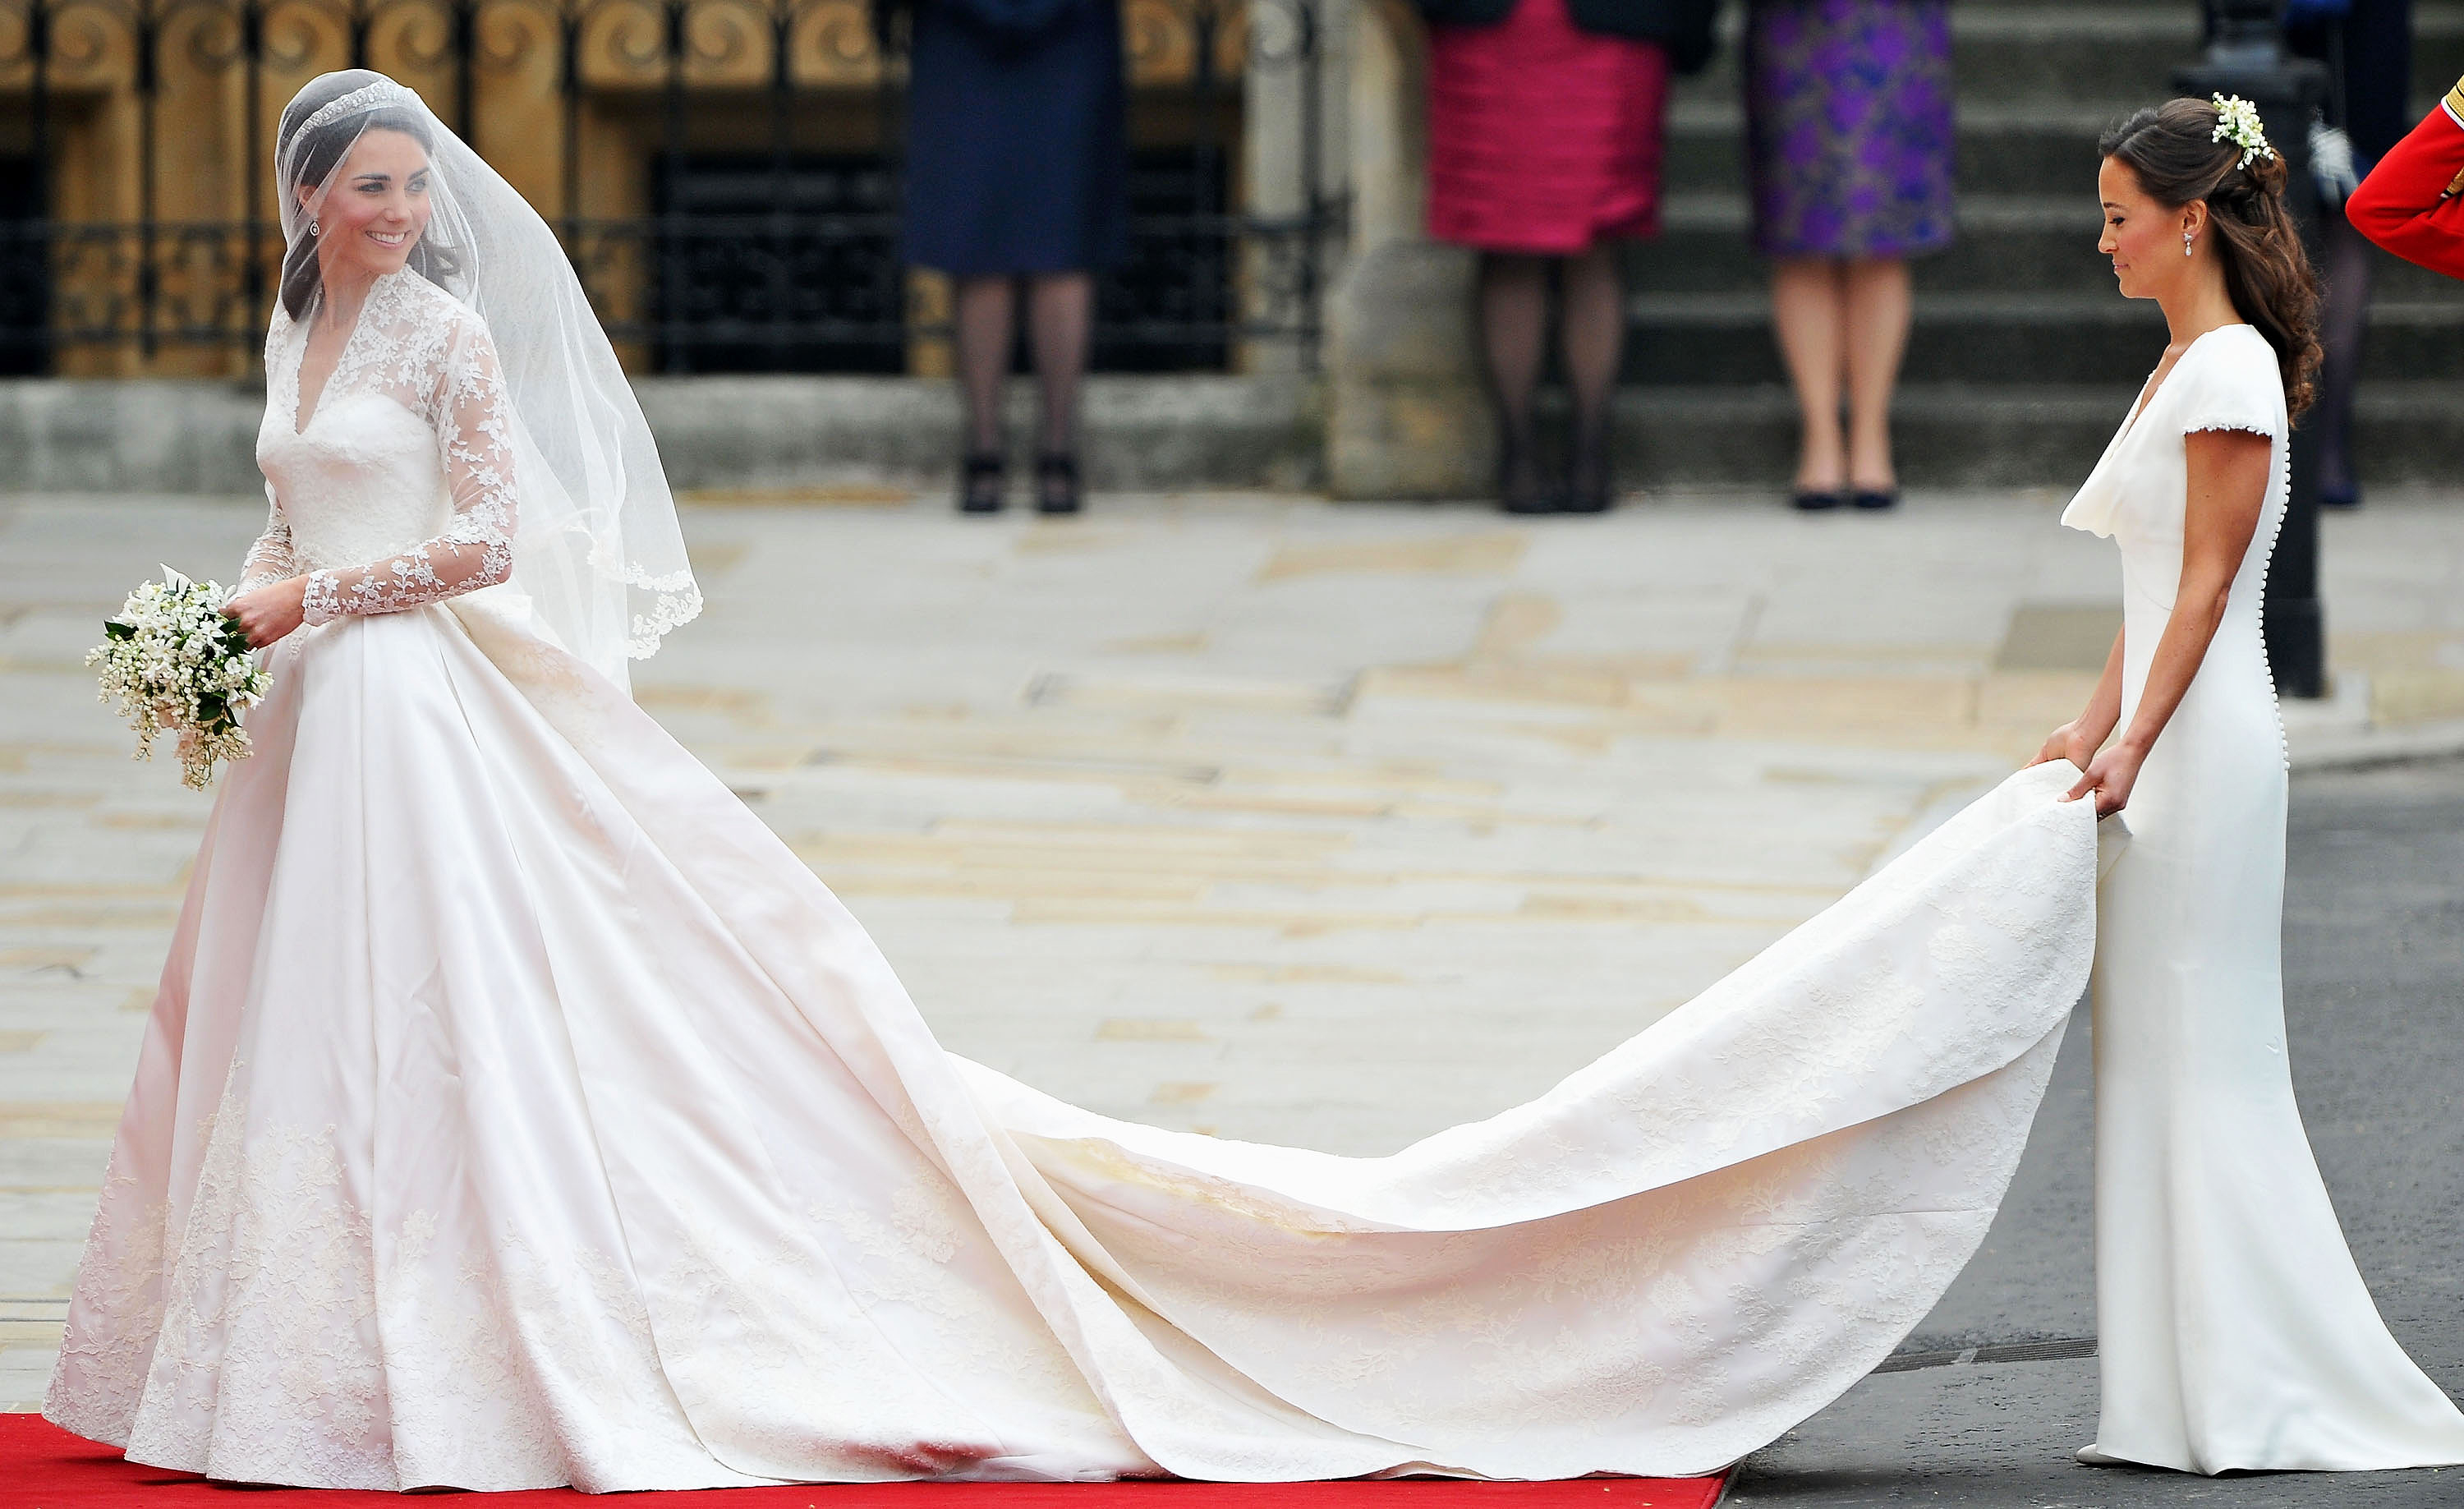 Pippa middletons infamous royal wedding bridesmaid dress look royal wedding dresses ever pippa middleton ombrellifo Gallery